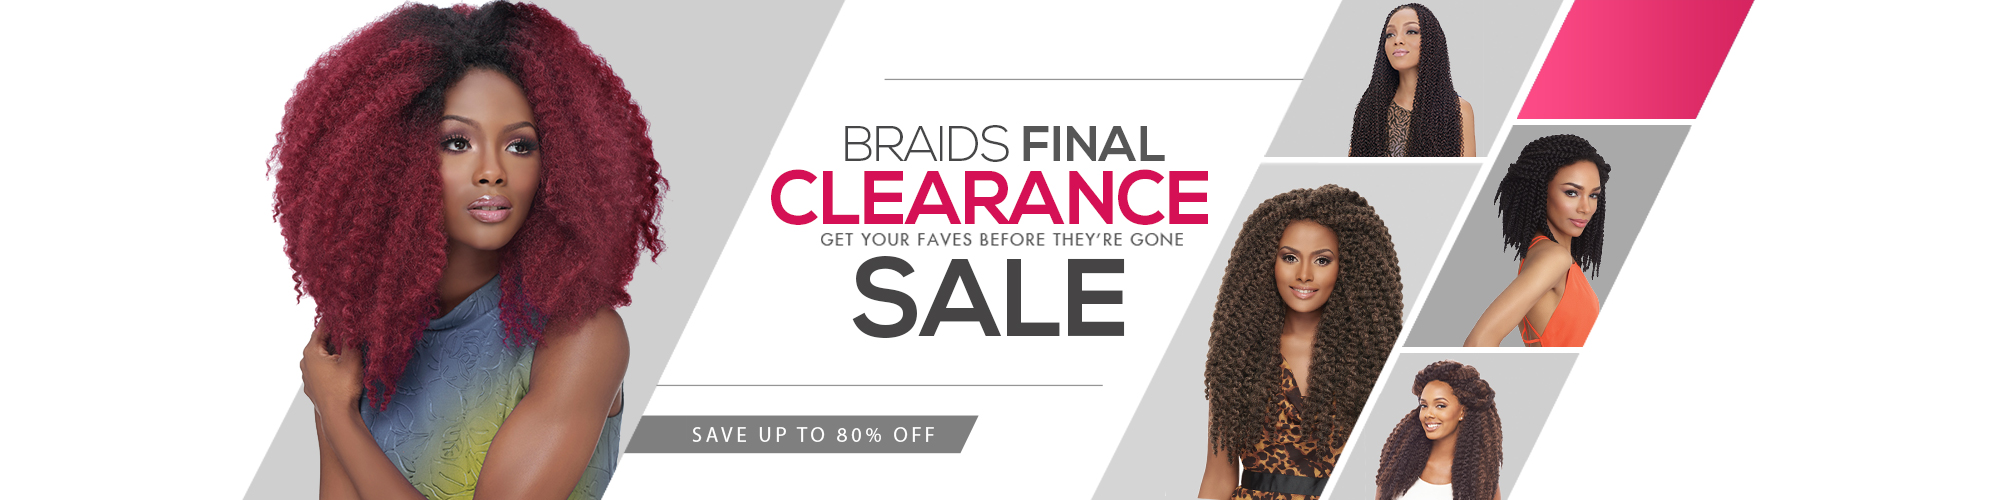 Braids Final Clearance Sale